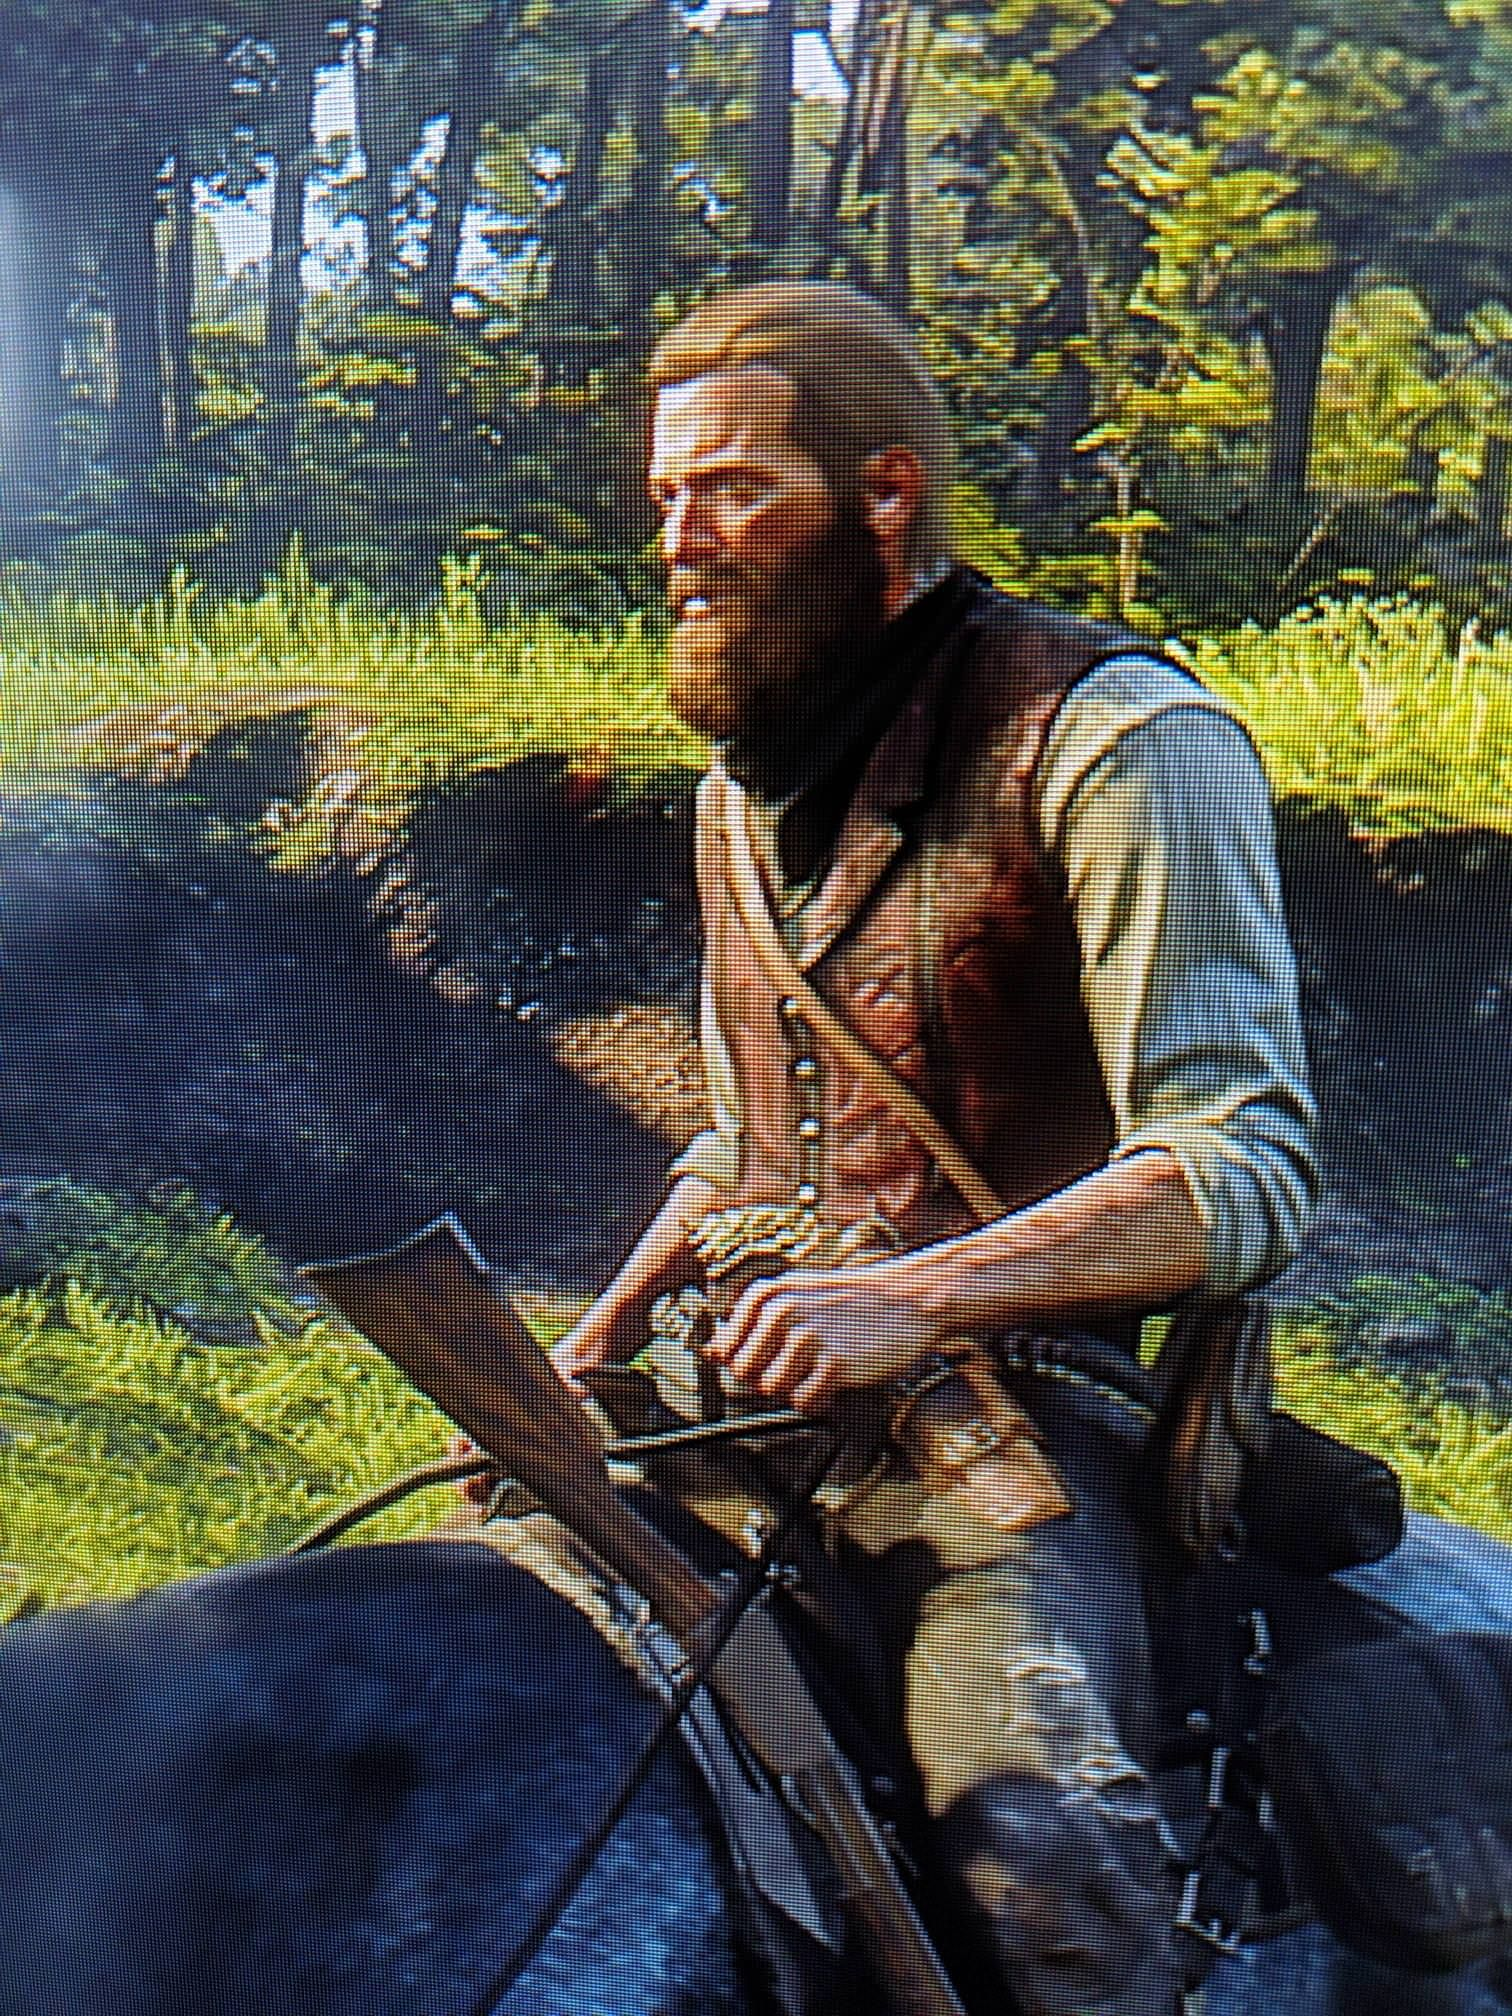 Shout out to Arthur Morgan\u0027s ability to grow a beautiful